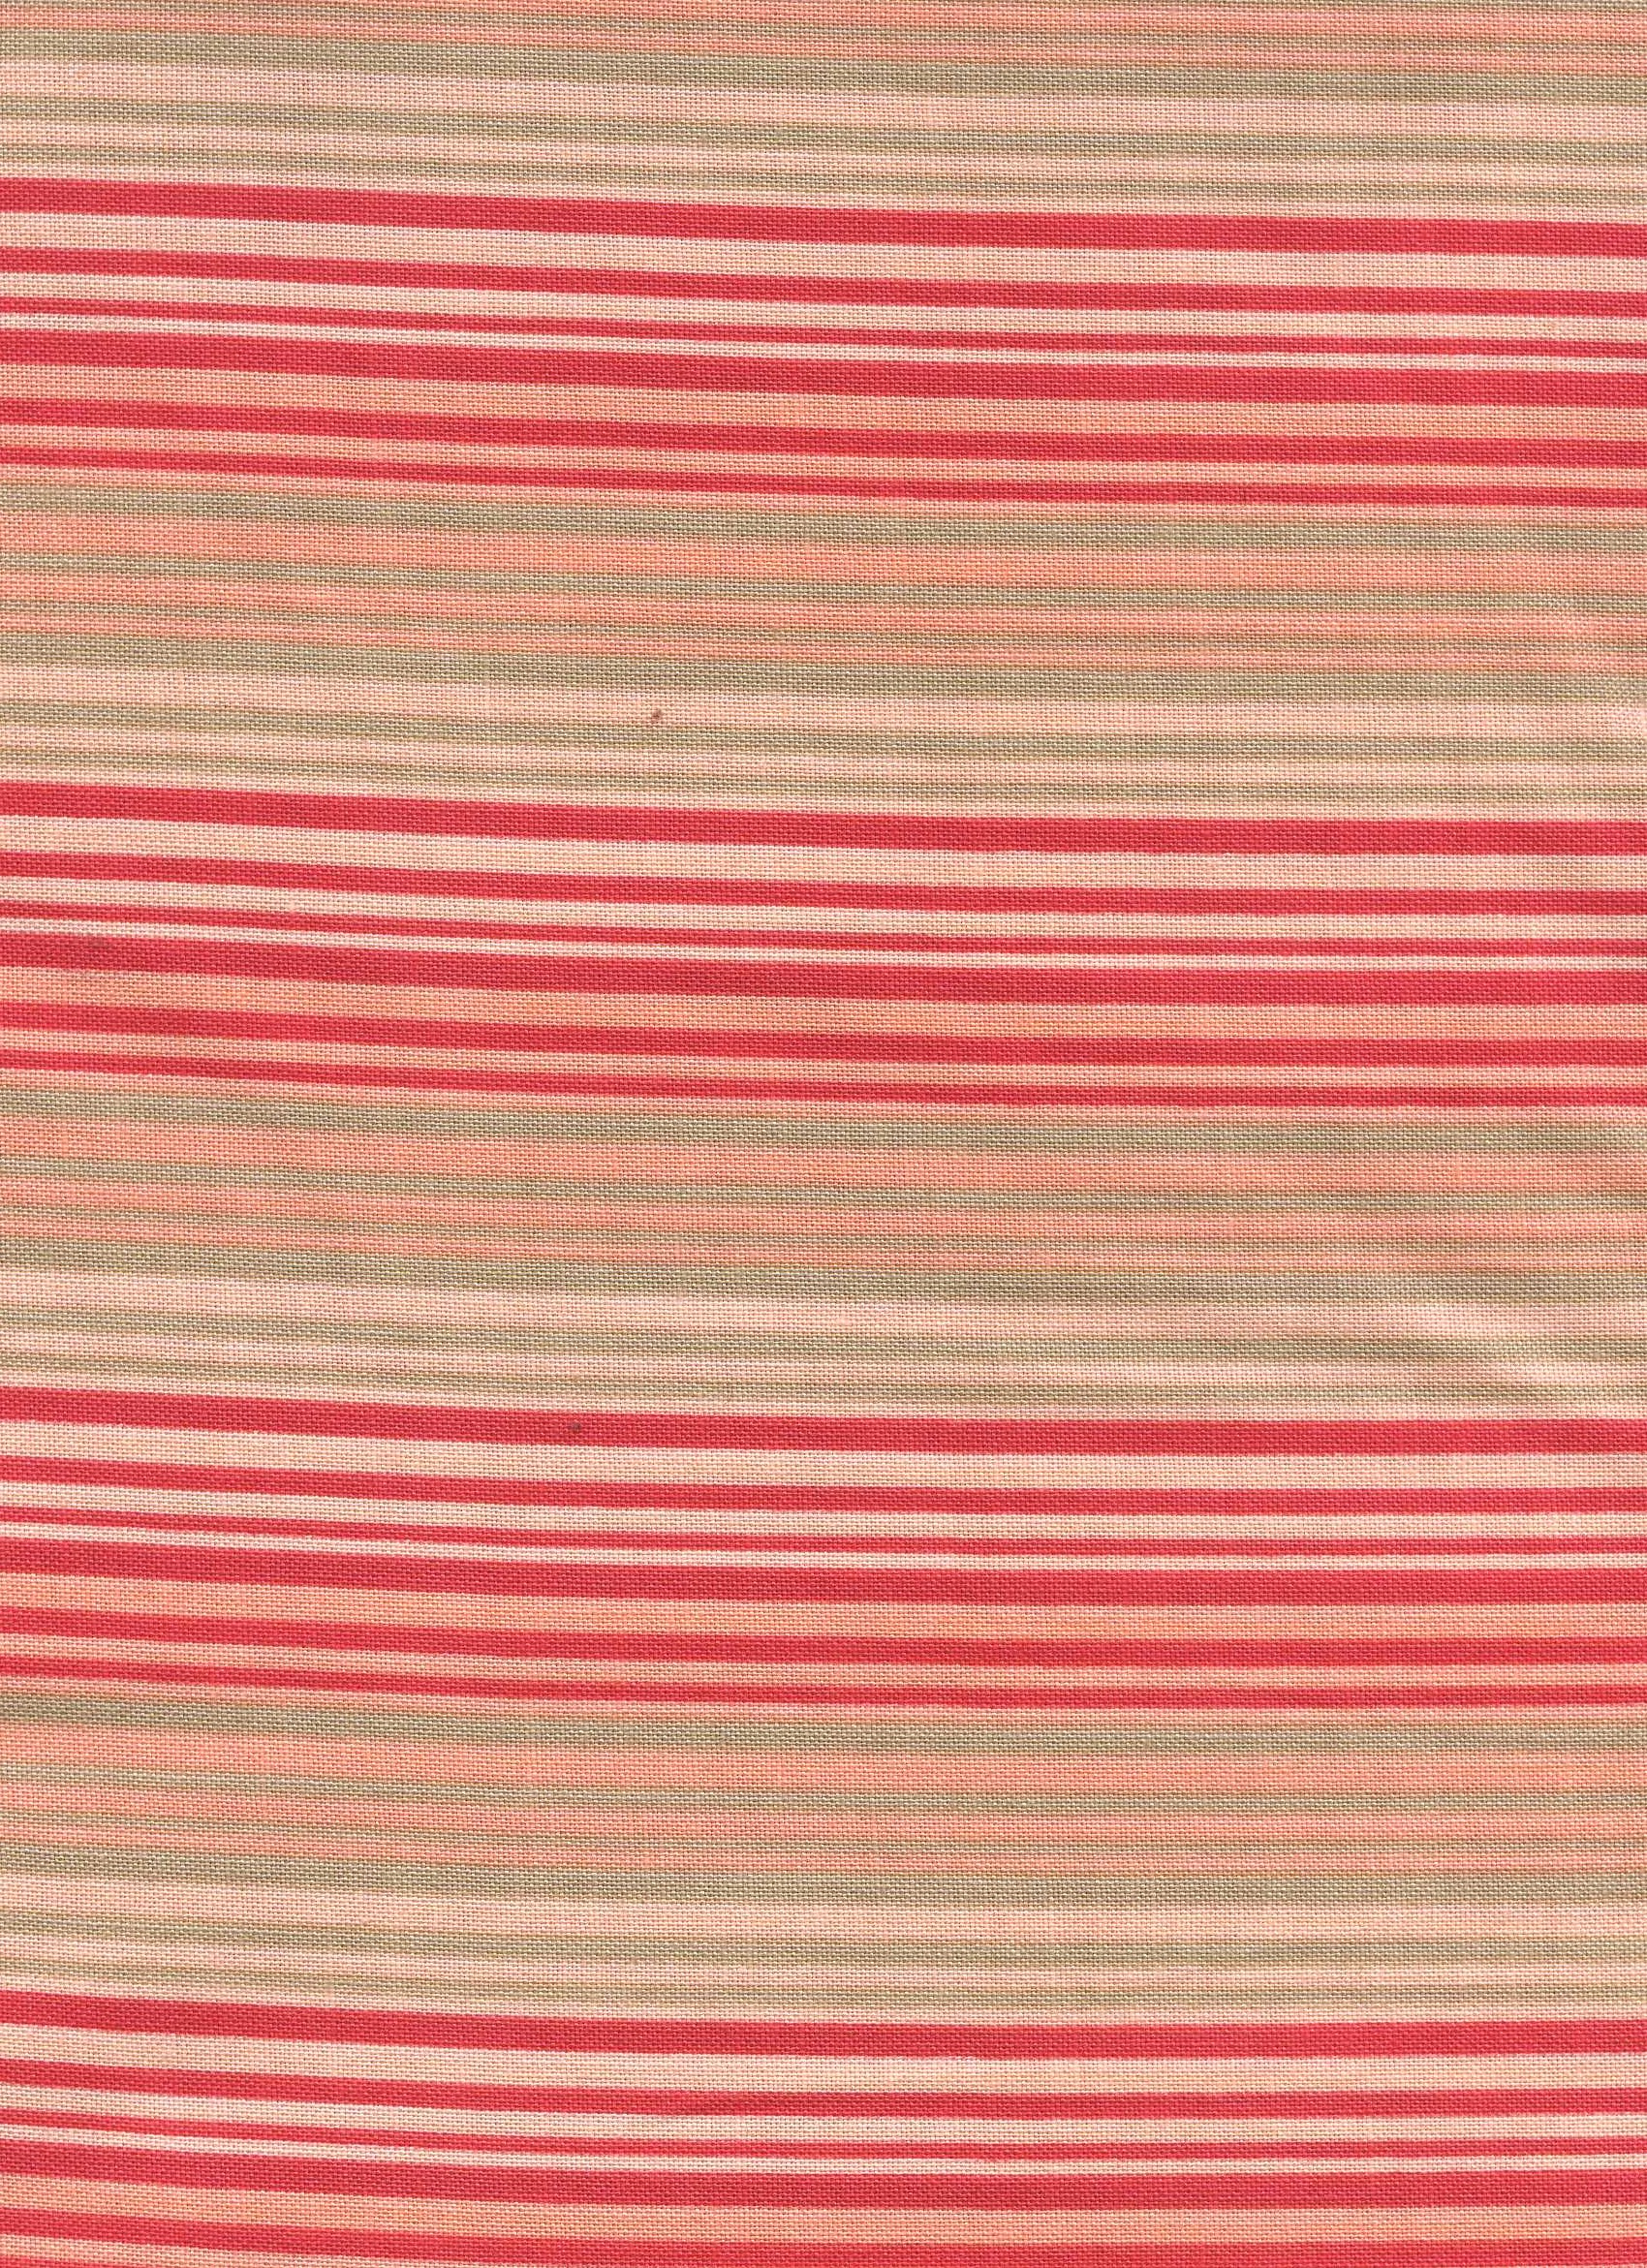 Coral and Orange Stripe